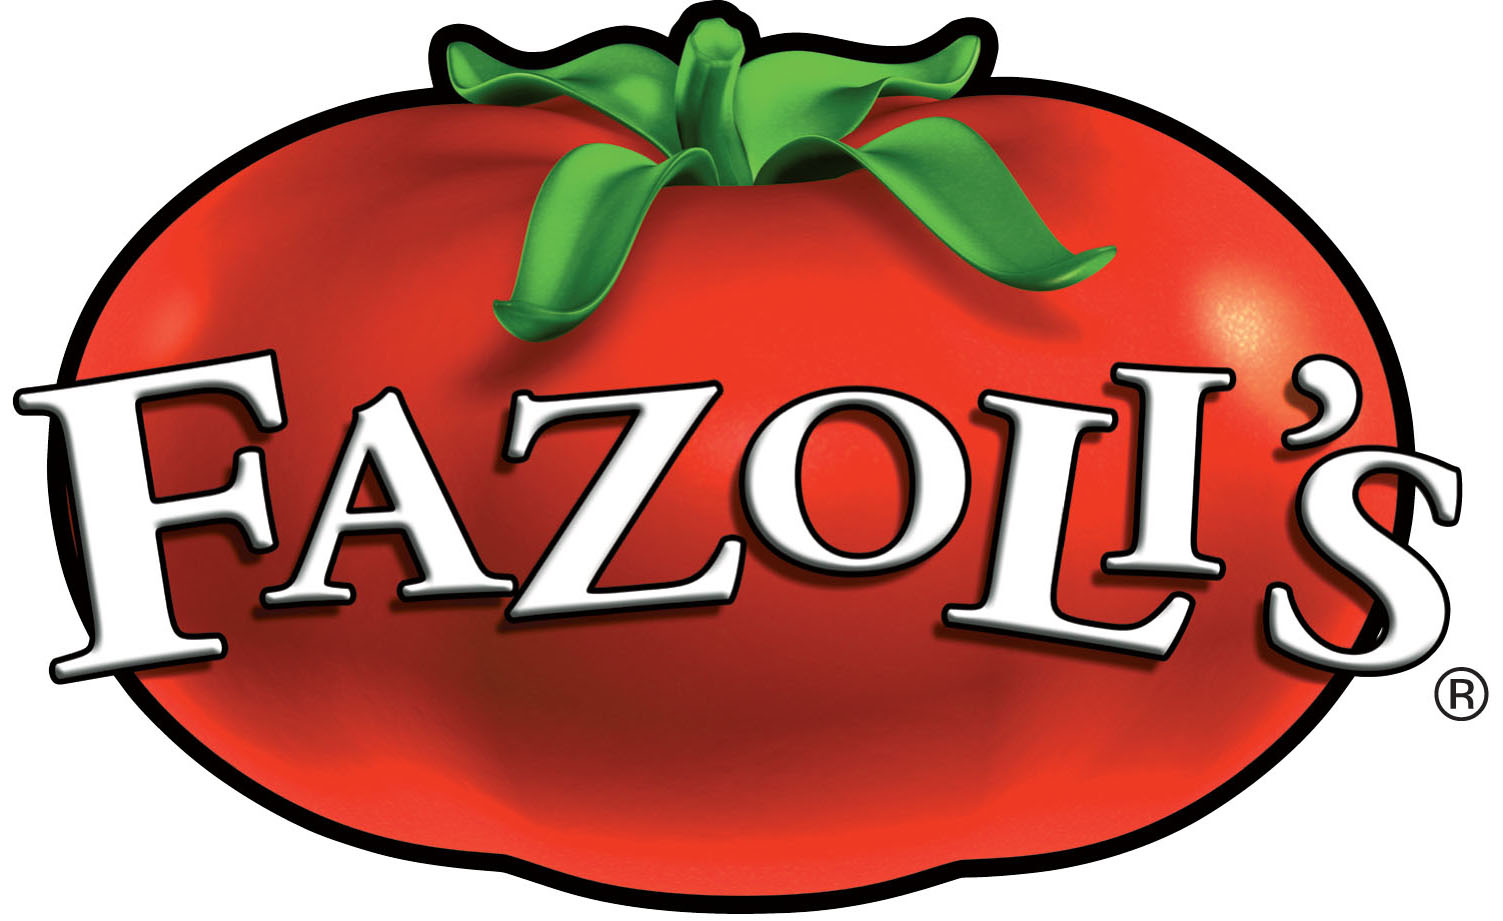 Image result for fazoli's logo